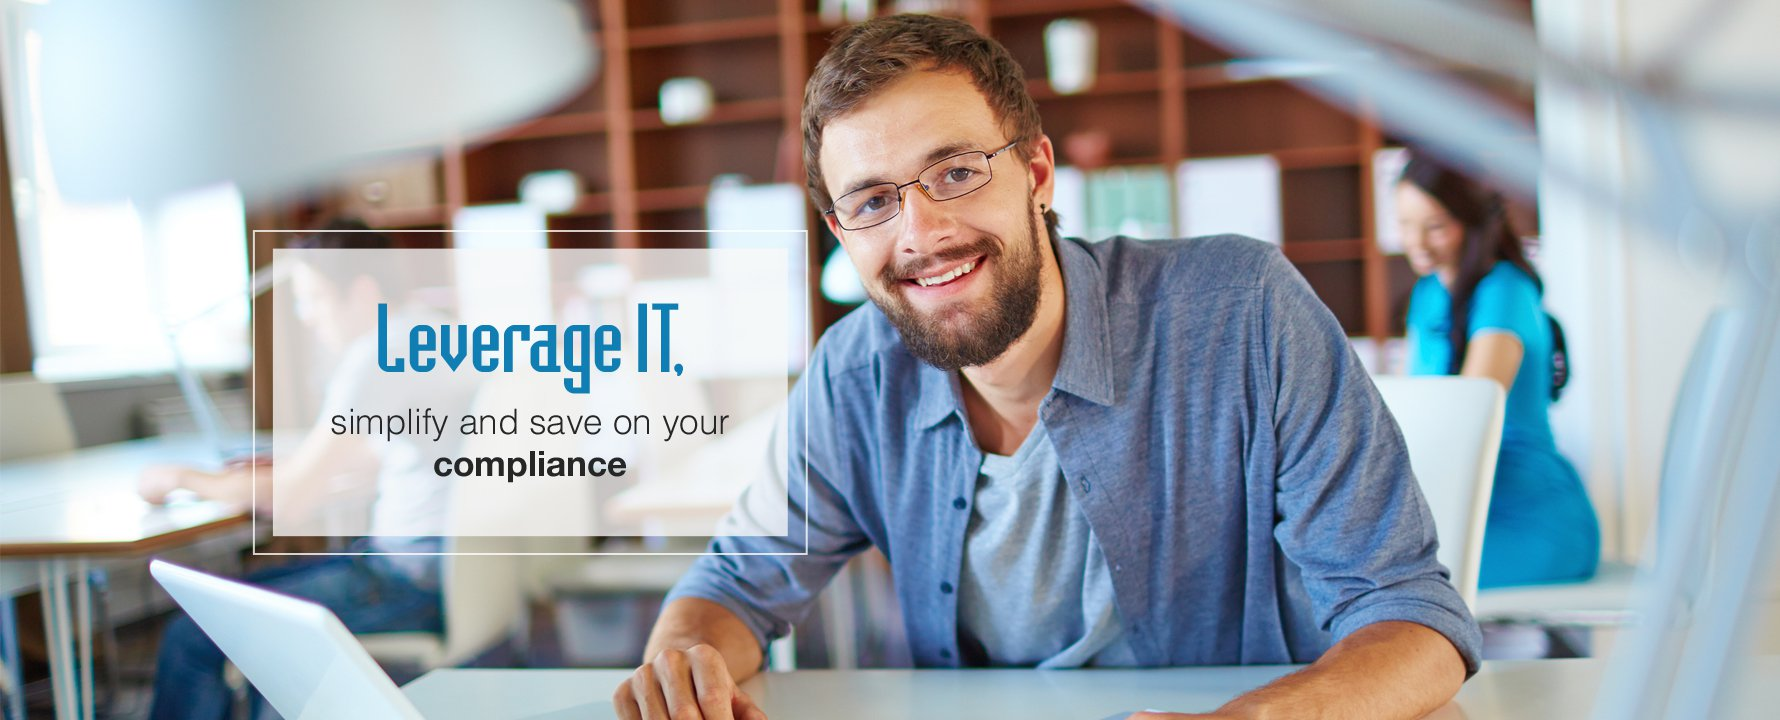 Leverage-IT,-simplify-and-save-on-your-compliance